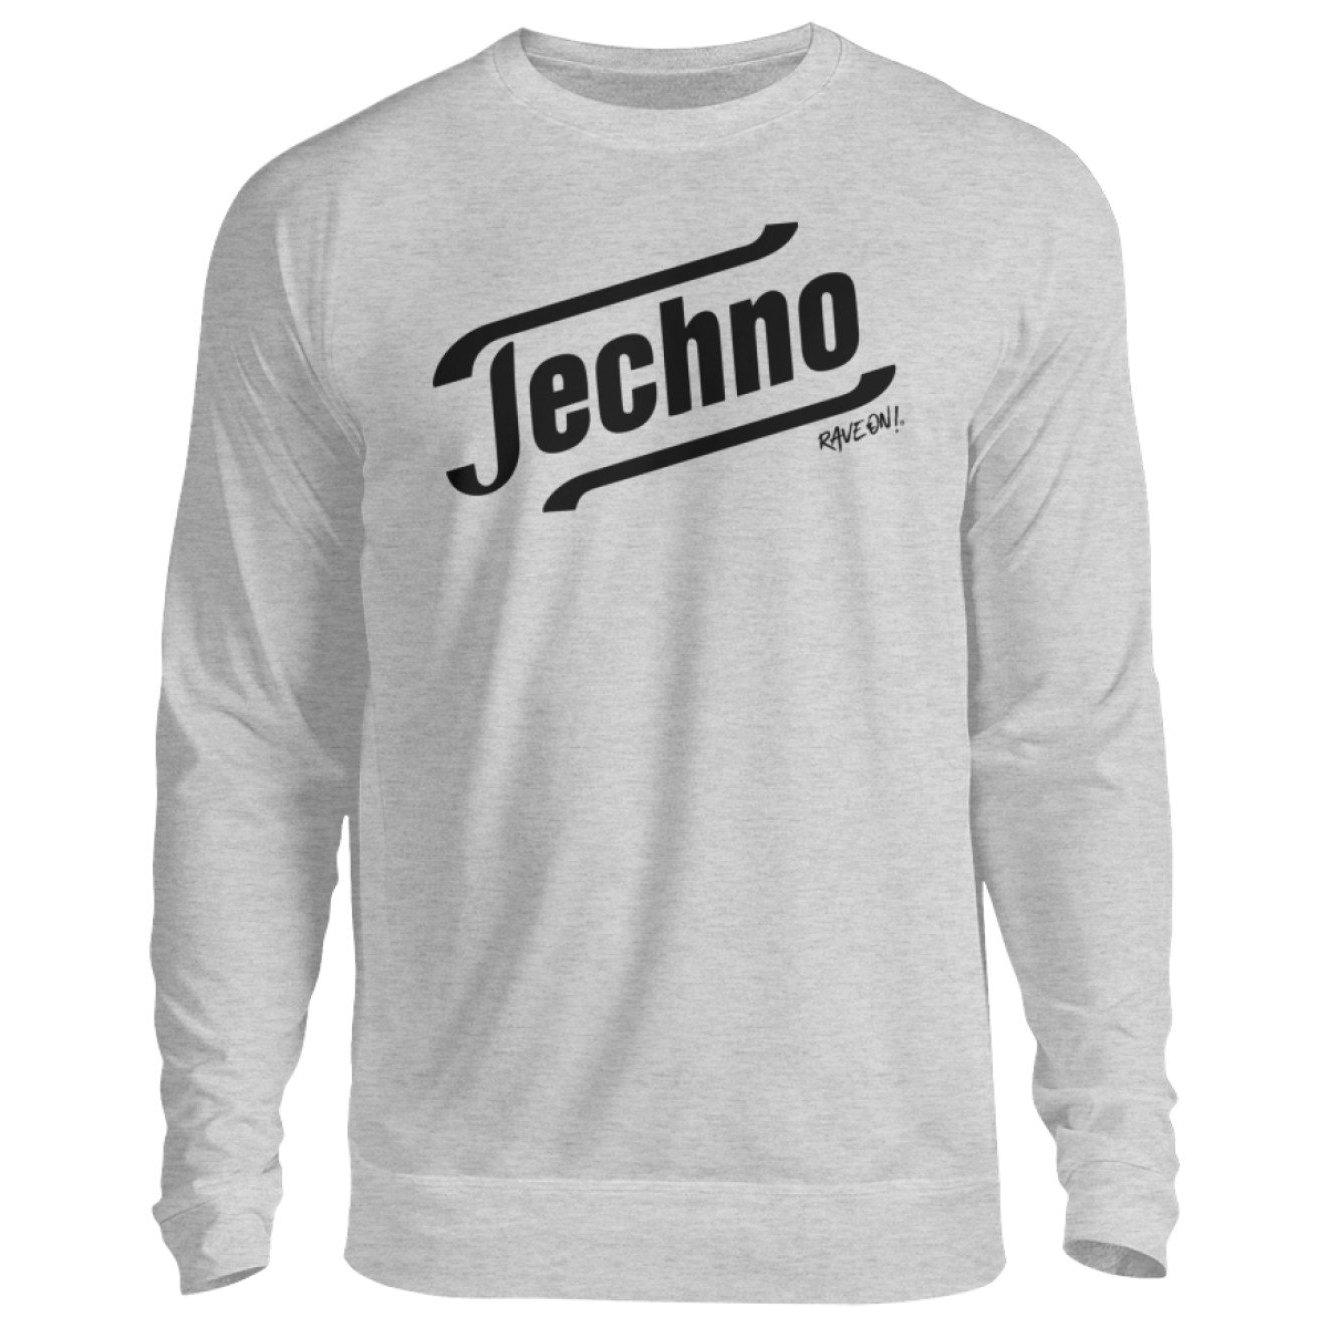 Techno Tempo White -Rave On!® - Unisex Pullover-Unisex Sweatshirt-Heather Grey-S-Rave-On! I www.rave-on.shop I Deine Rave & Techno Szene Shop I apparel, bopullover, boyfriend pullover, boypullover, Design - Techno Tempo White -Rave On!®, Funny, geschenk, lustig, meme, on!®, pullover boy, pullover boyfriend, rave, rave apparel, rave clothing, rave gear, Rave on, Rave on!®, rave wear, raver, spruch, techno, Tempo, ® - Sexy Festival Streetwear , Clubwear & Raver Style